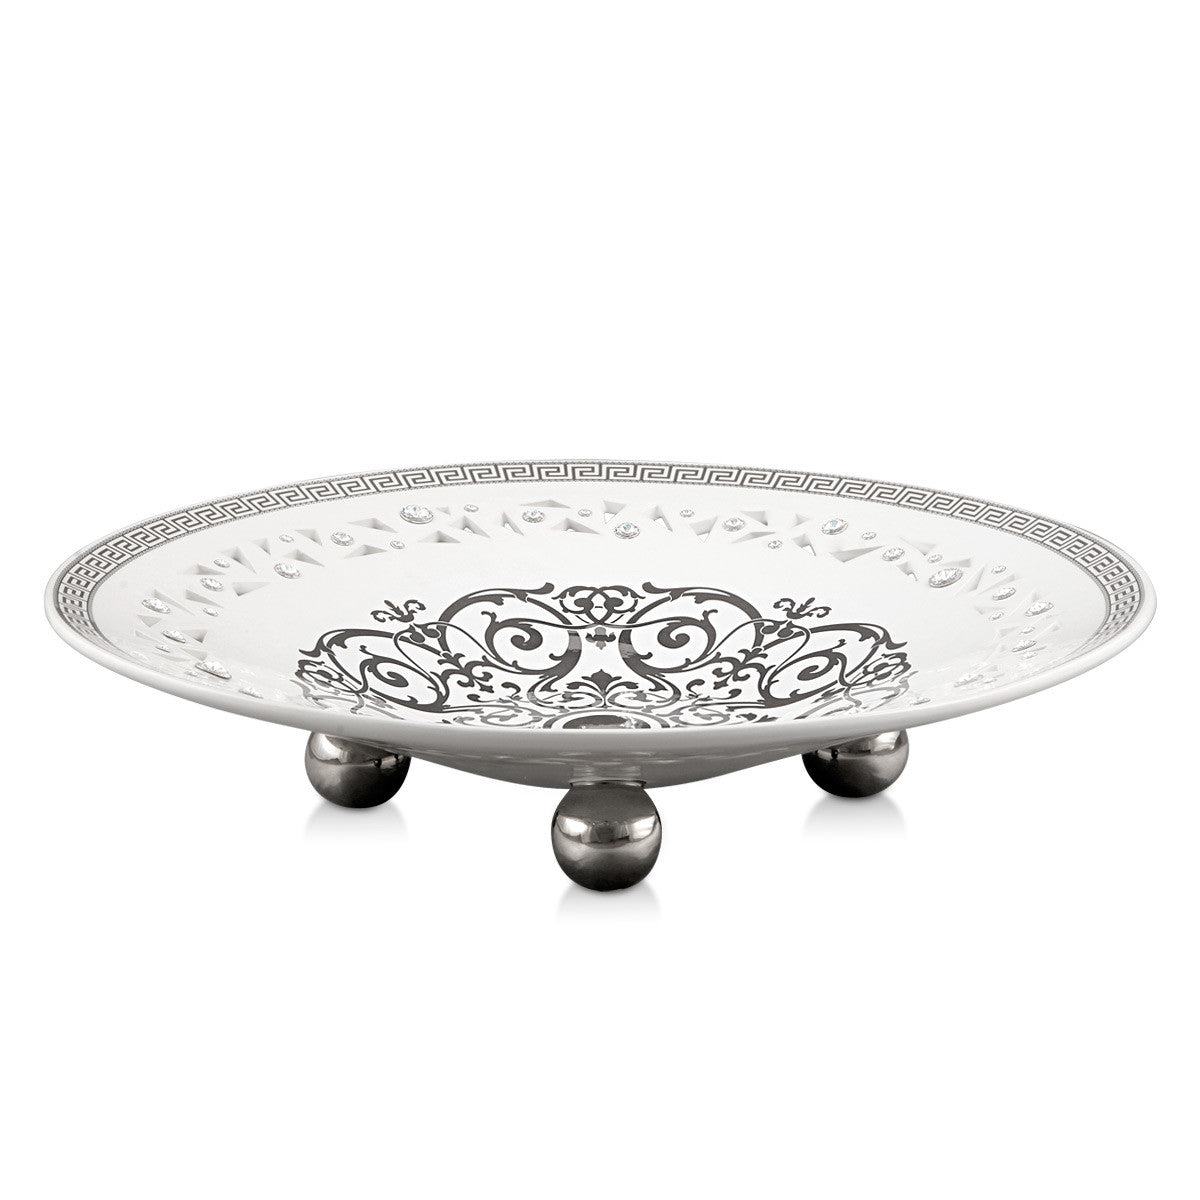 Ceramic plate centerpiece with imperial design